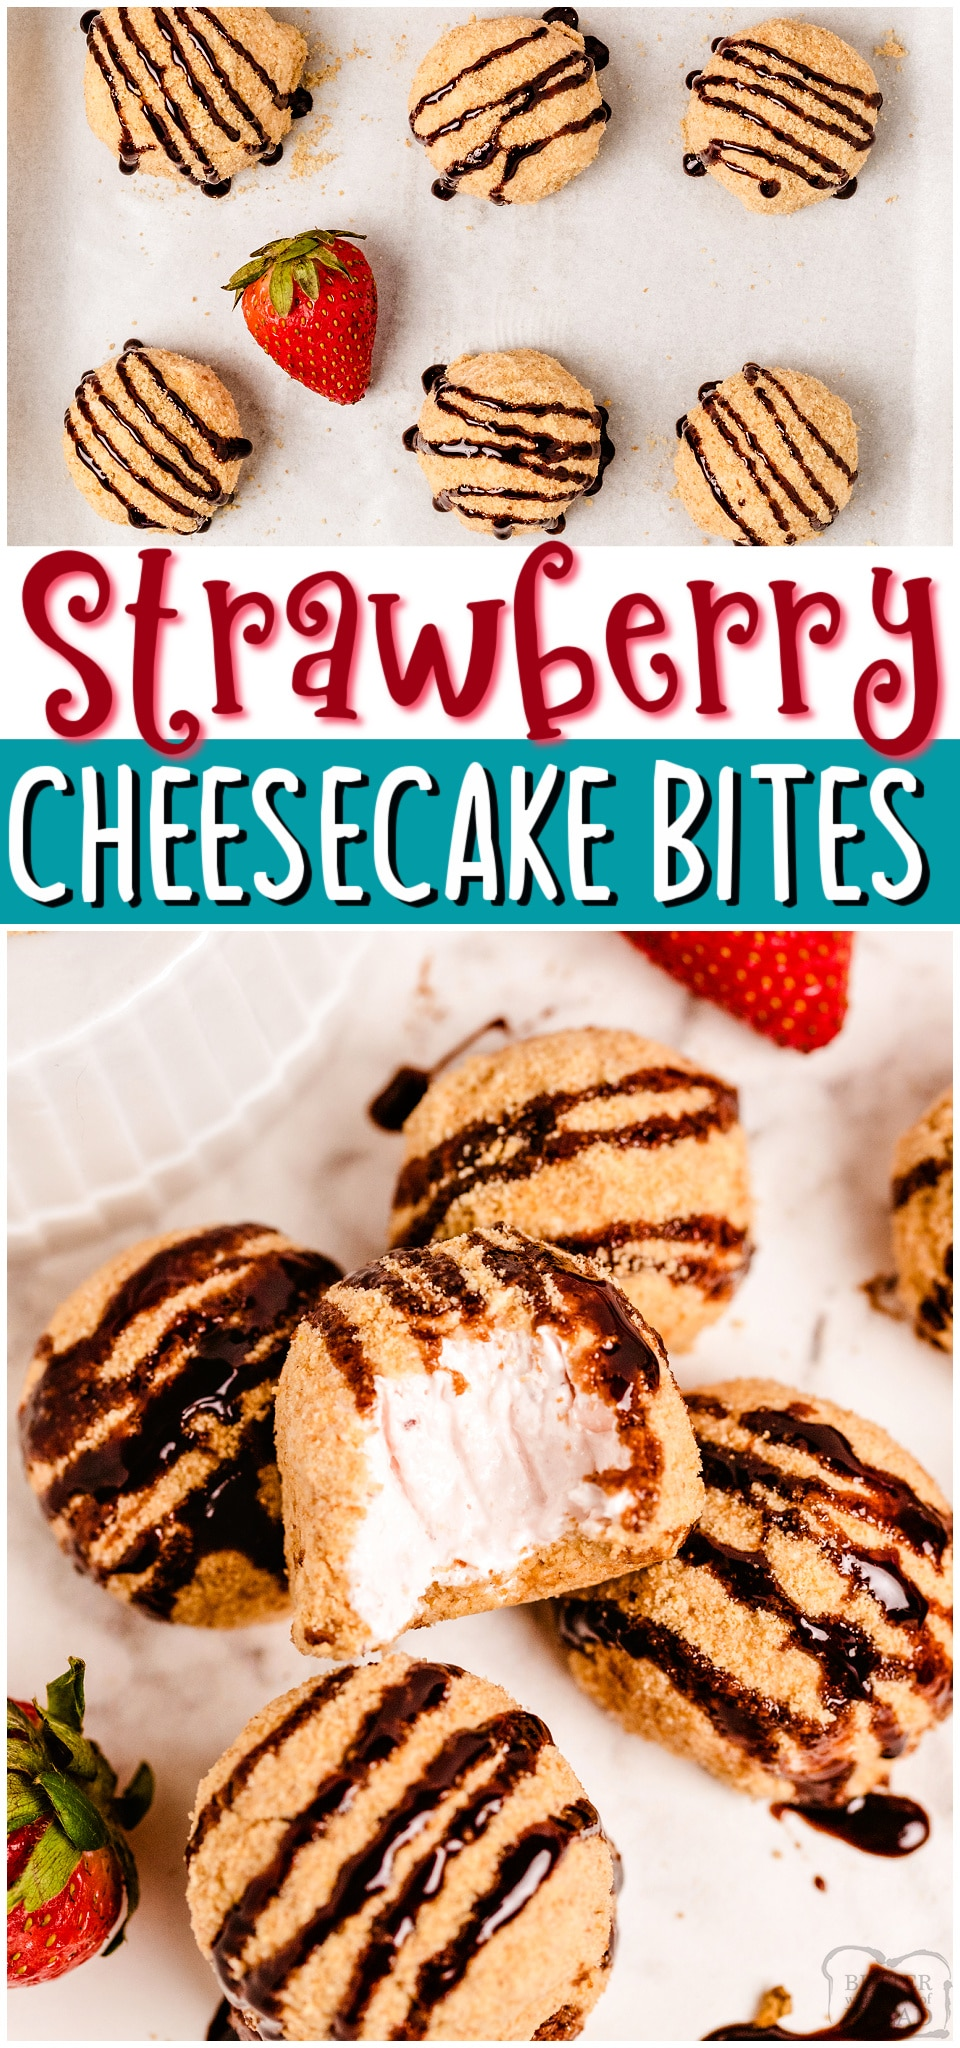 Easy Strawberry Cheesecake Bites made with fresh strawberries & cream cheese; rolled into bite-sized morsels and coated with graham cracker crumbs. Tasty strawberry cheesecake balls drizzled with hot fudge for the perfect party treat! #cheesecake #strawberry #dessert #nobake #easyrecipe from BUTTER WITH A SIDE OF BREAD